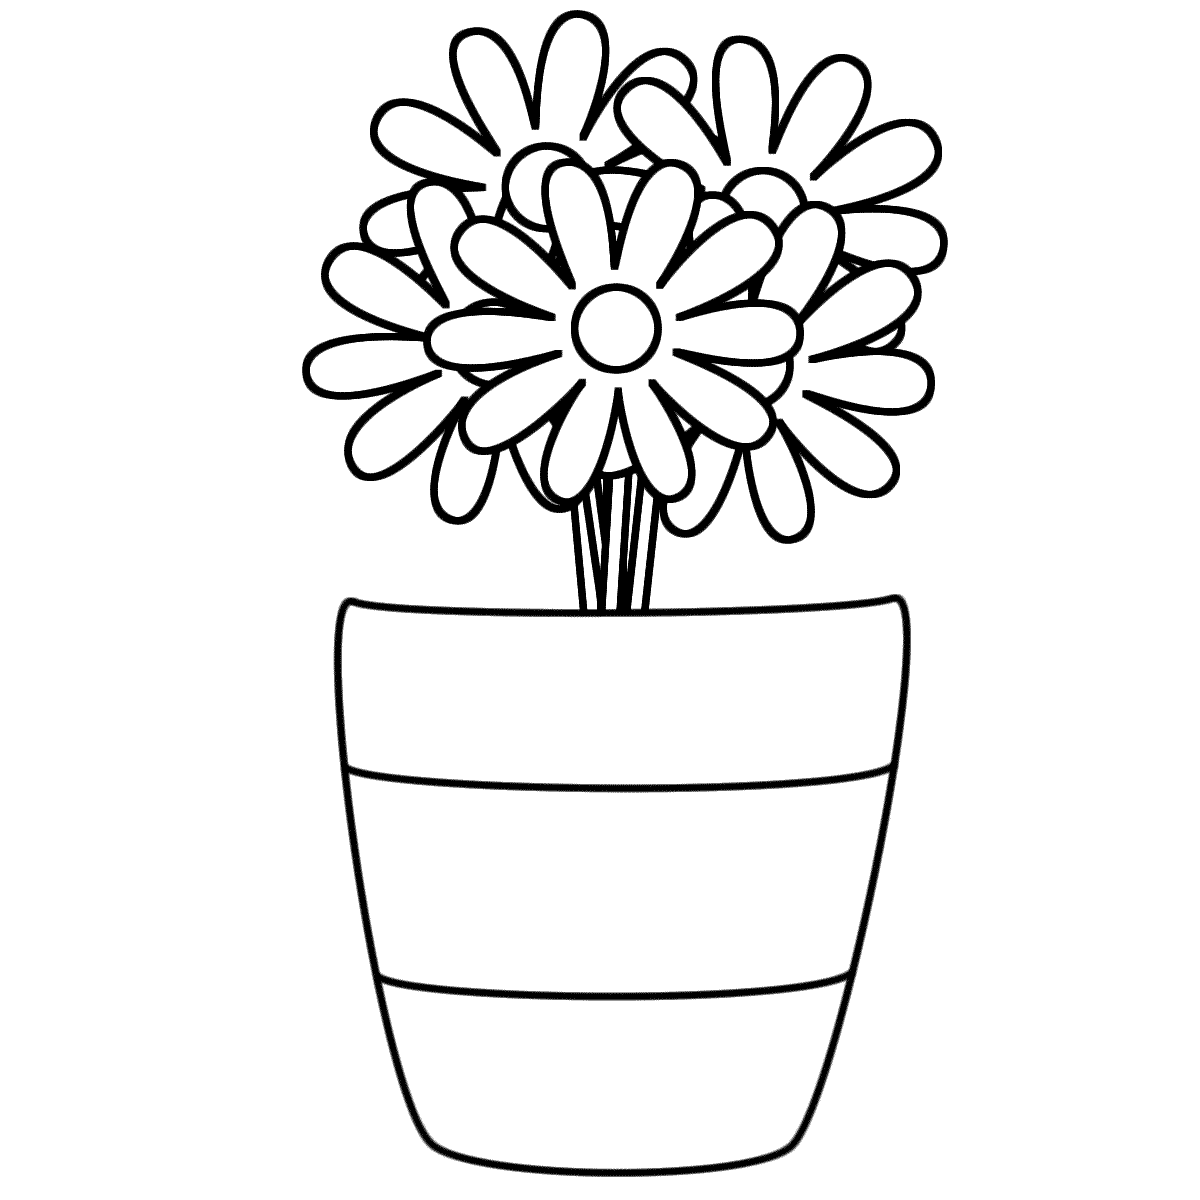 flower vase pictures to color vase and flowers coloring page coloring home pictures flower vase color to